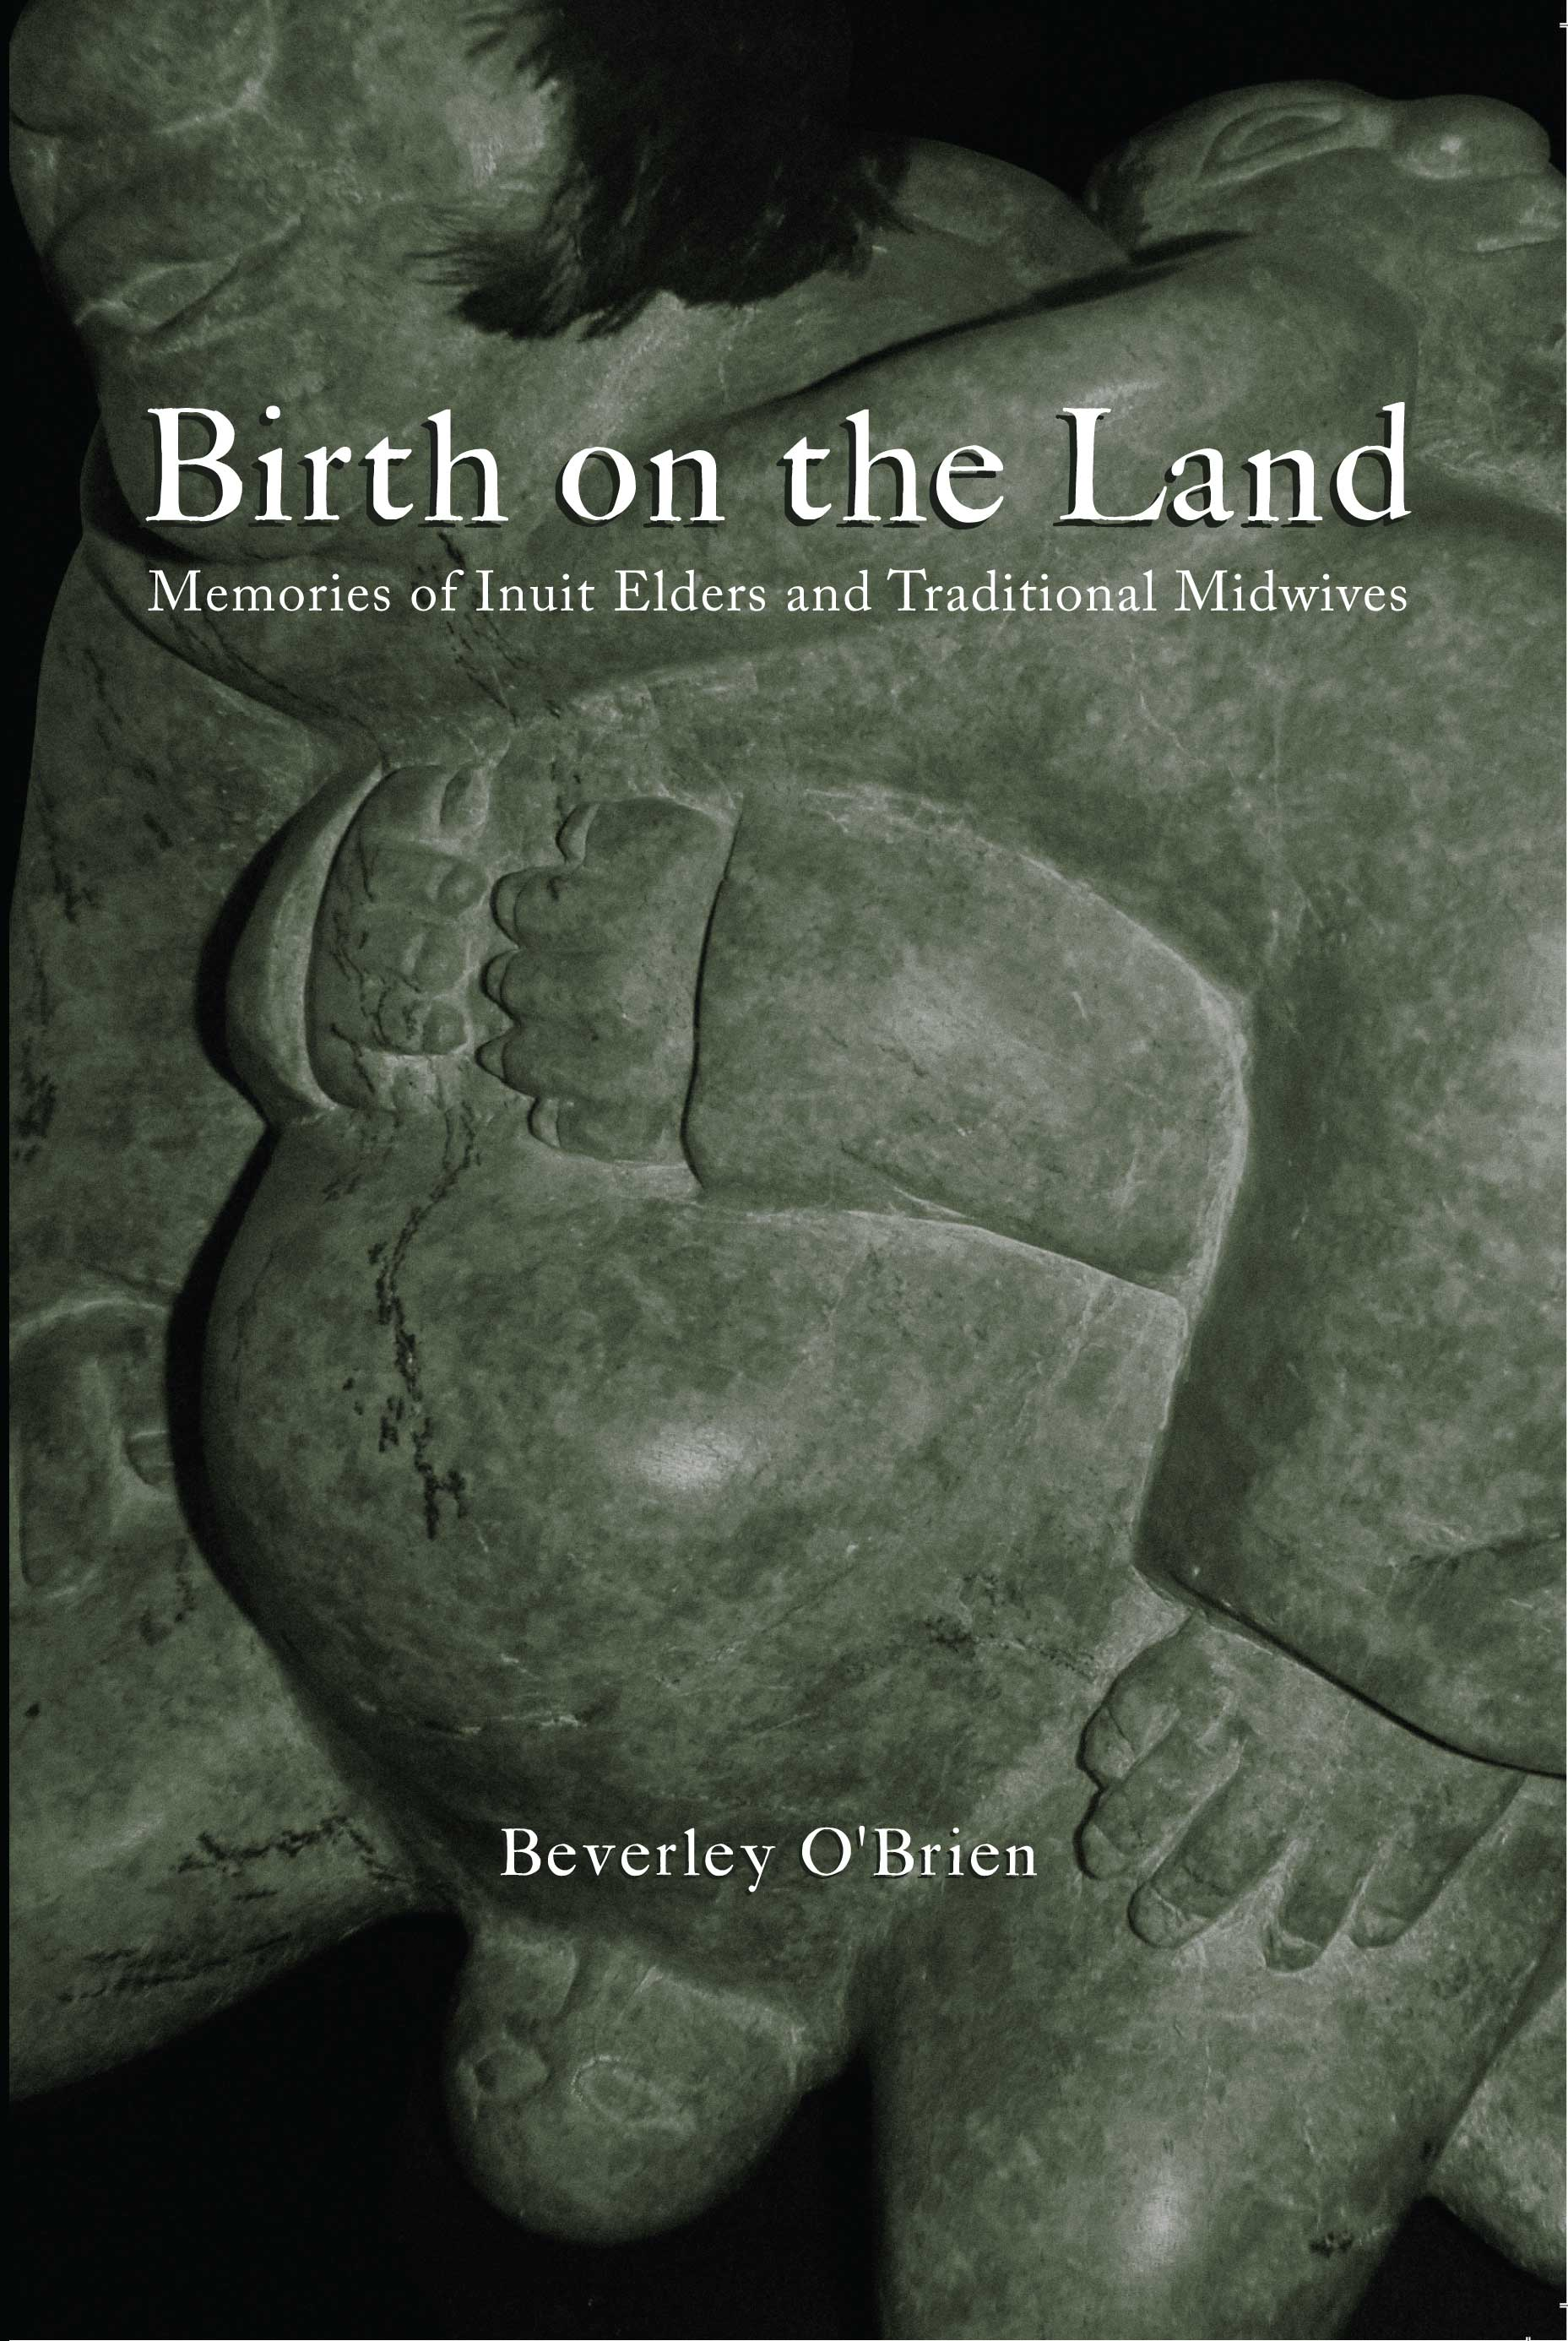 Birth on the Land